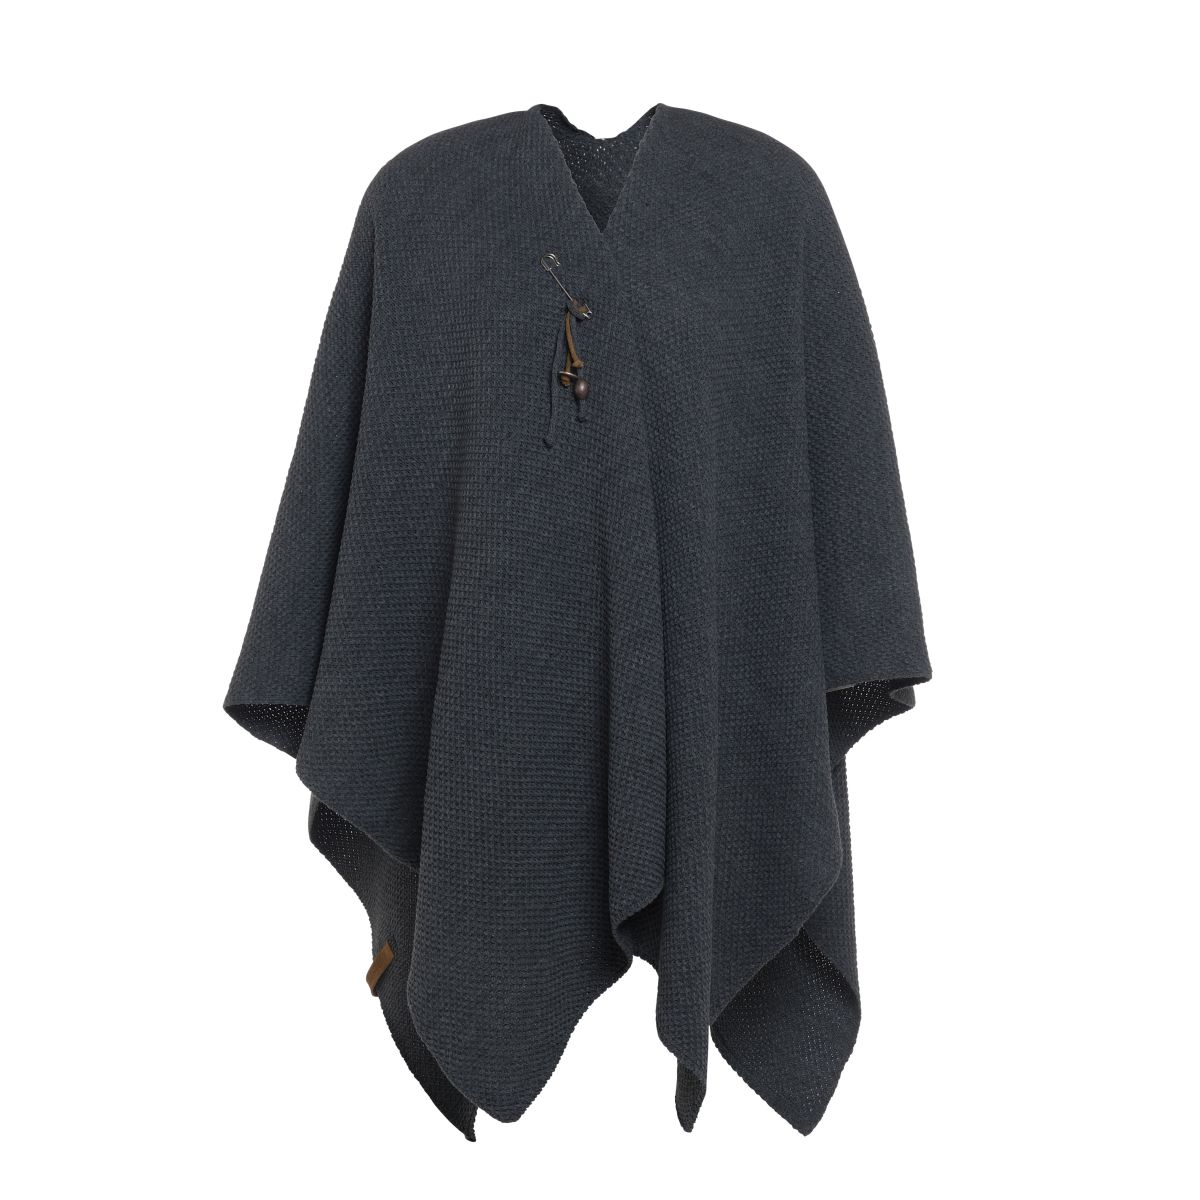 jazz shawl wrap anthracite